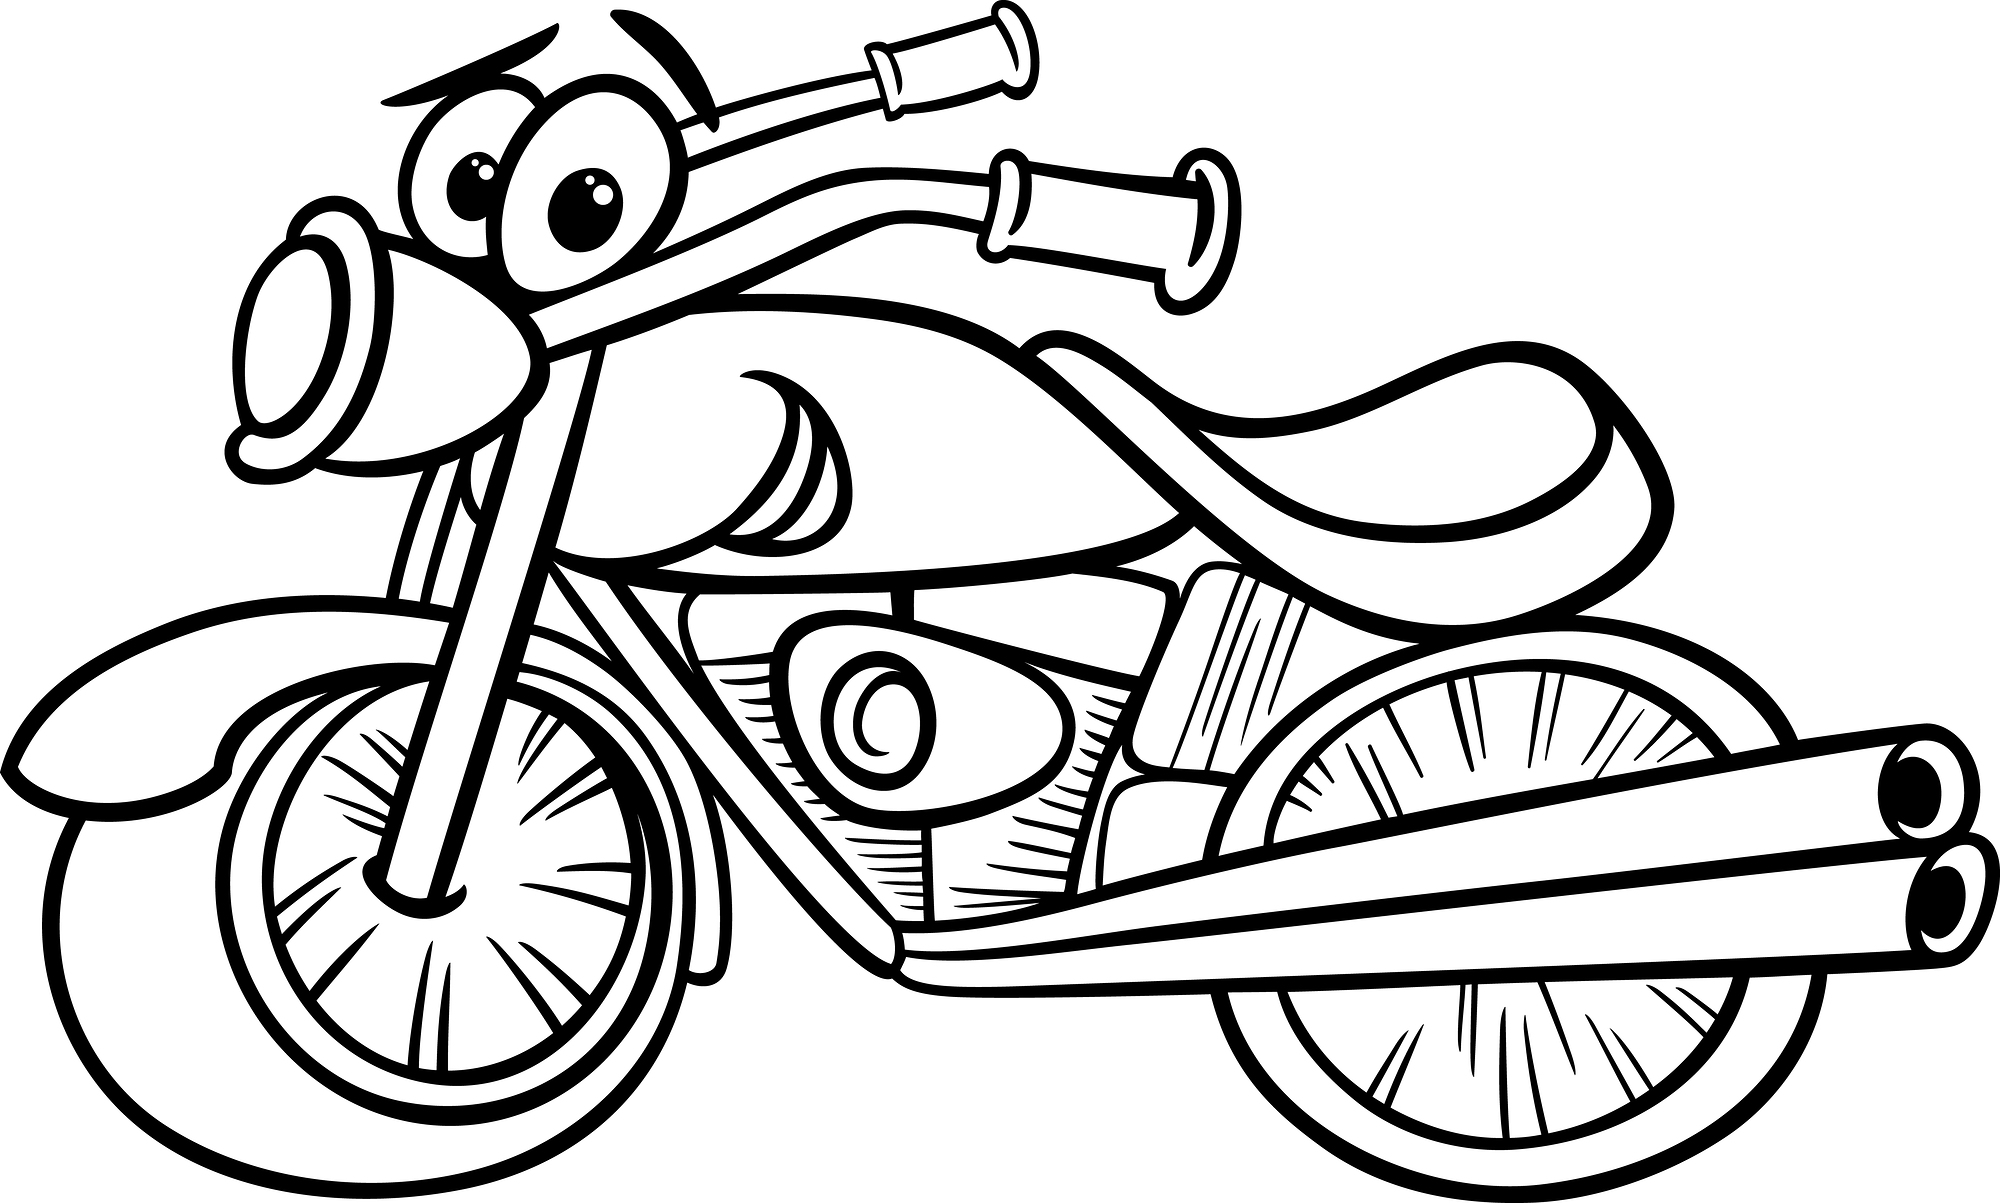 motorbike colouring free printable motorcycle coloring pages for kids cool2bkids colouring motorbike